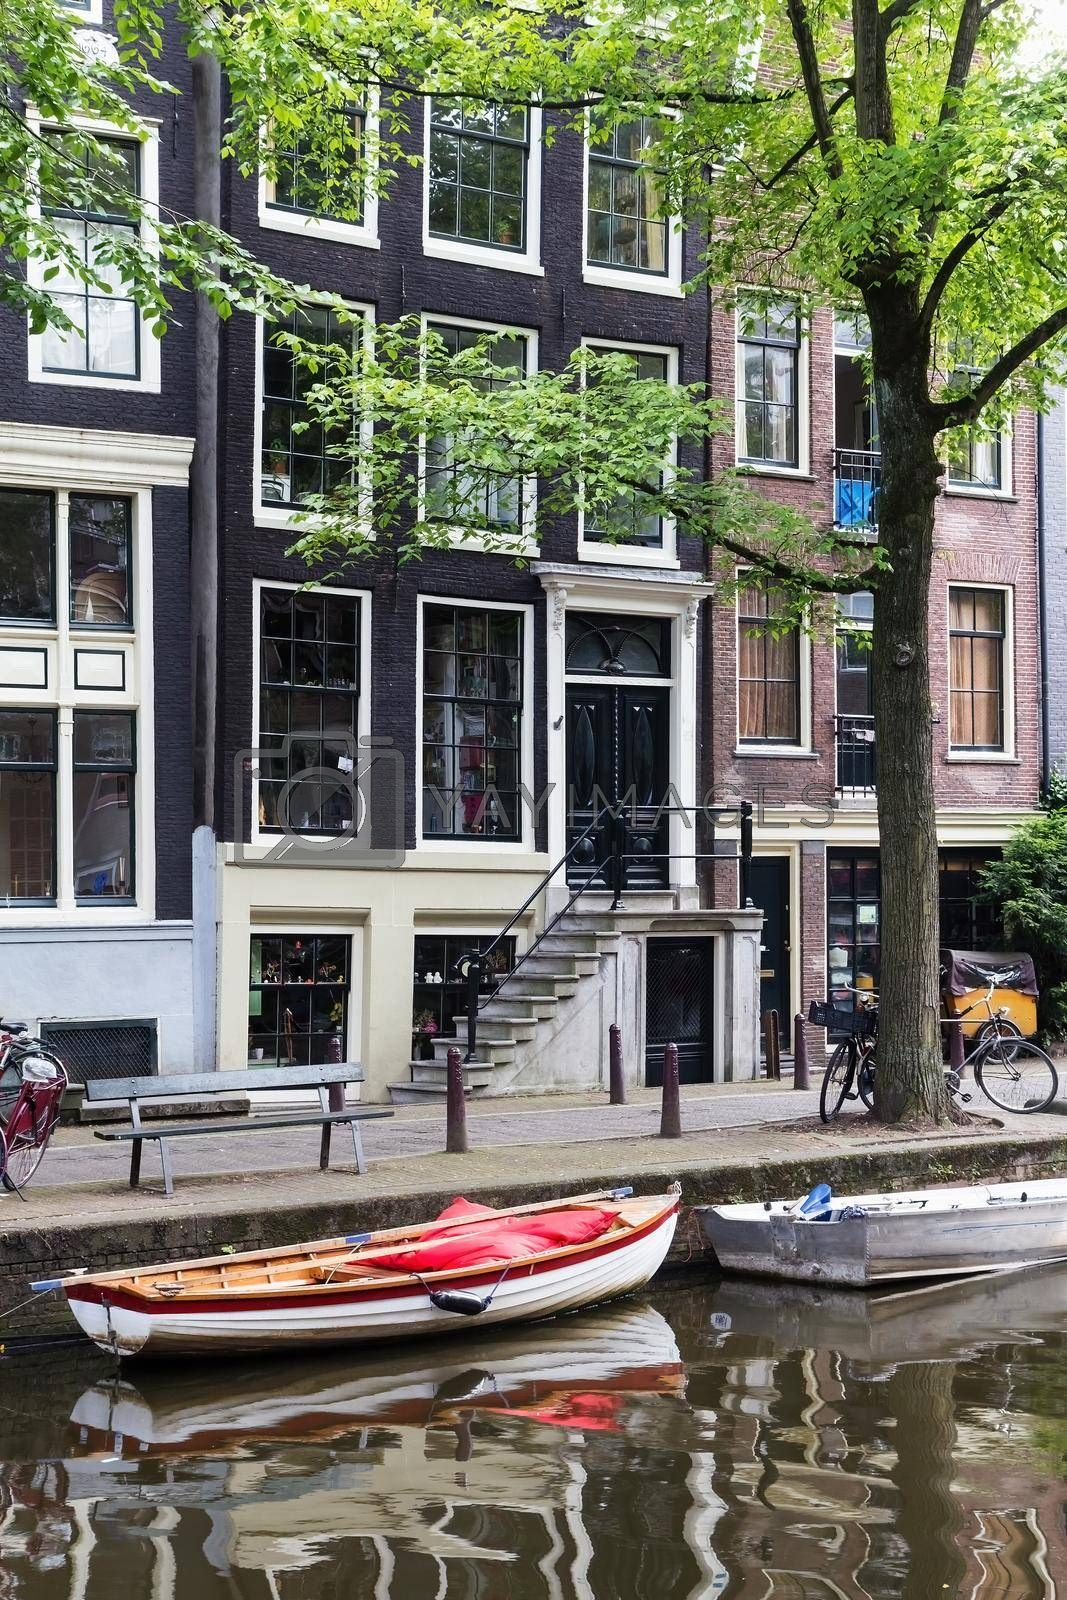 Royalty free image of Architecture in Amsterdam (Netherlands) by Frank11